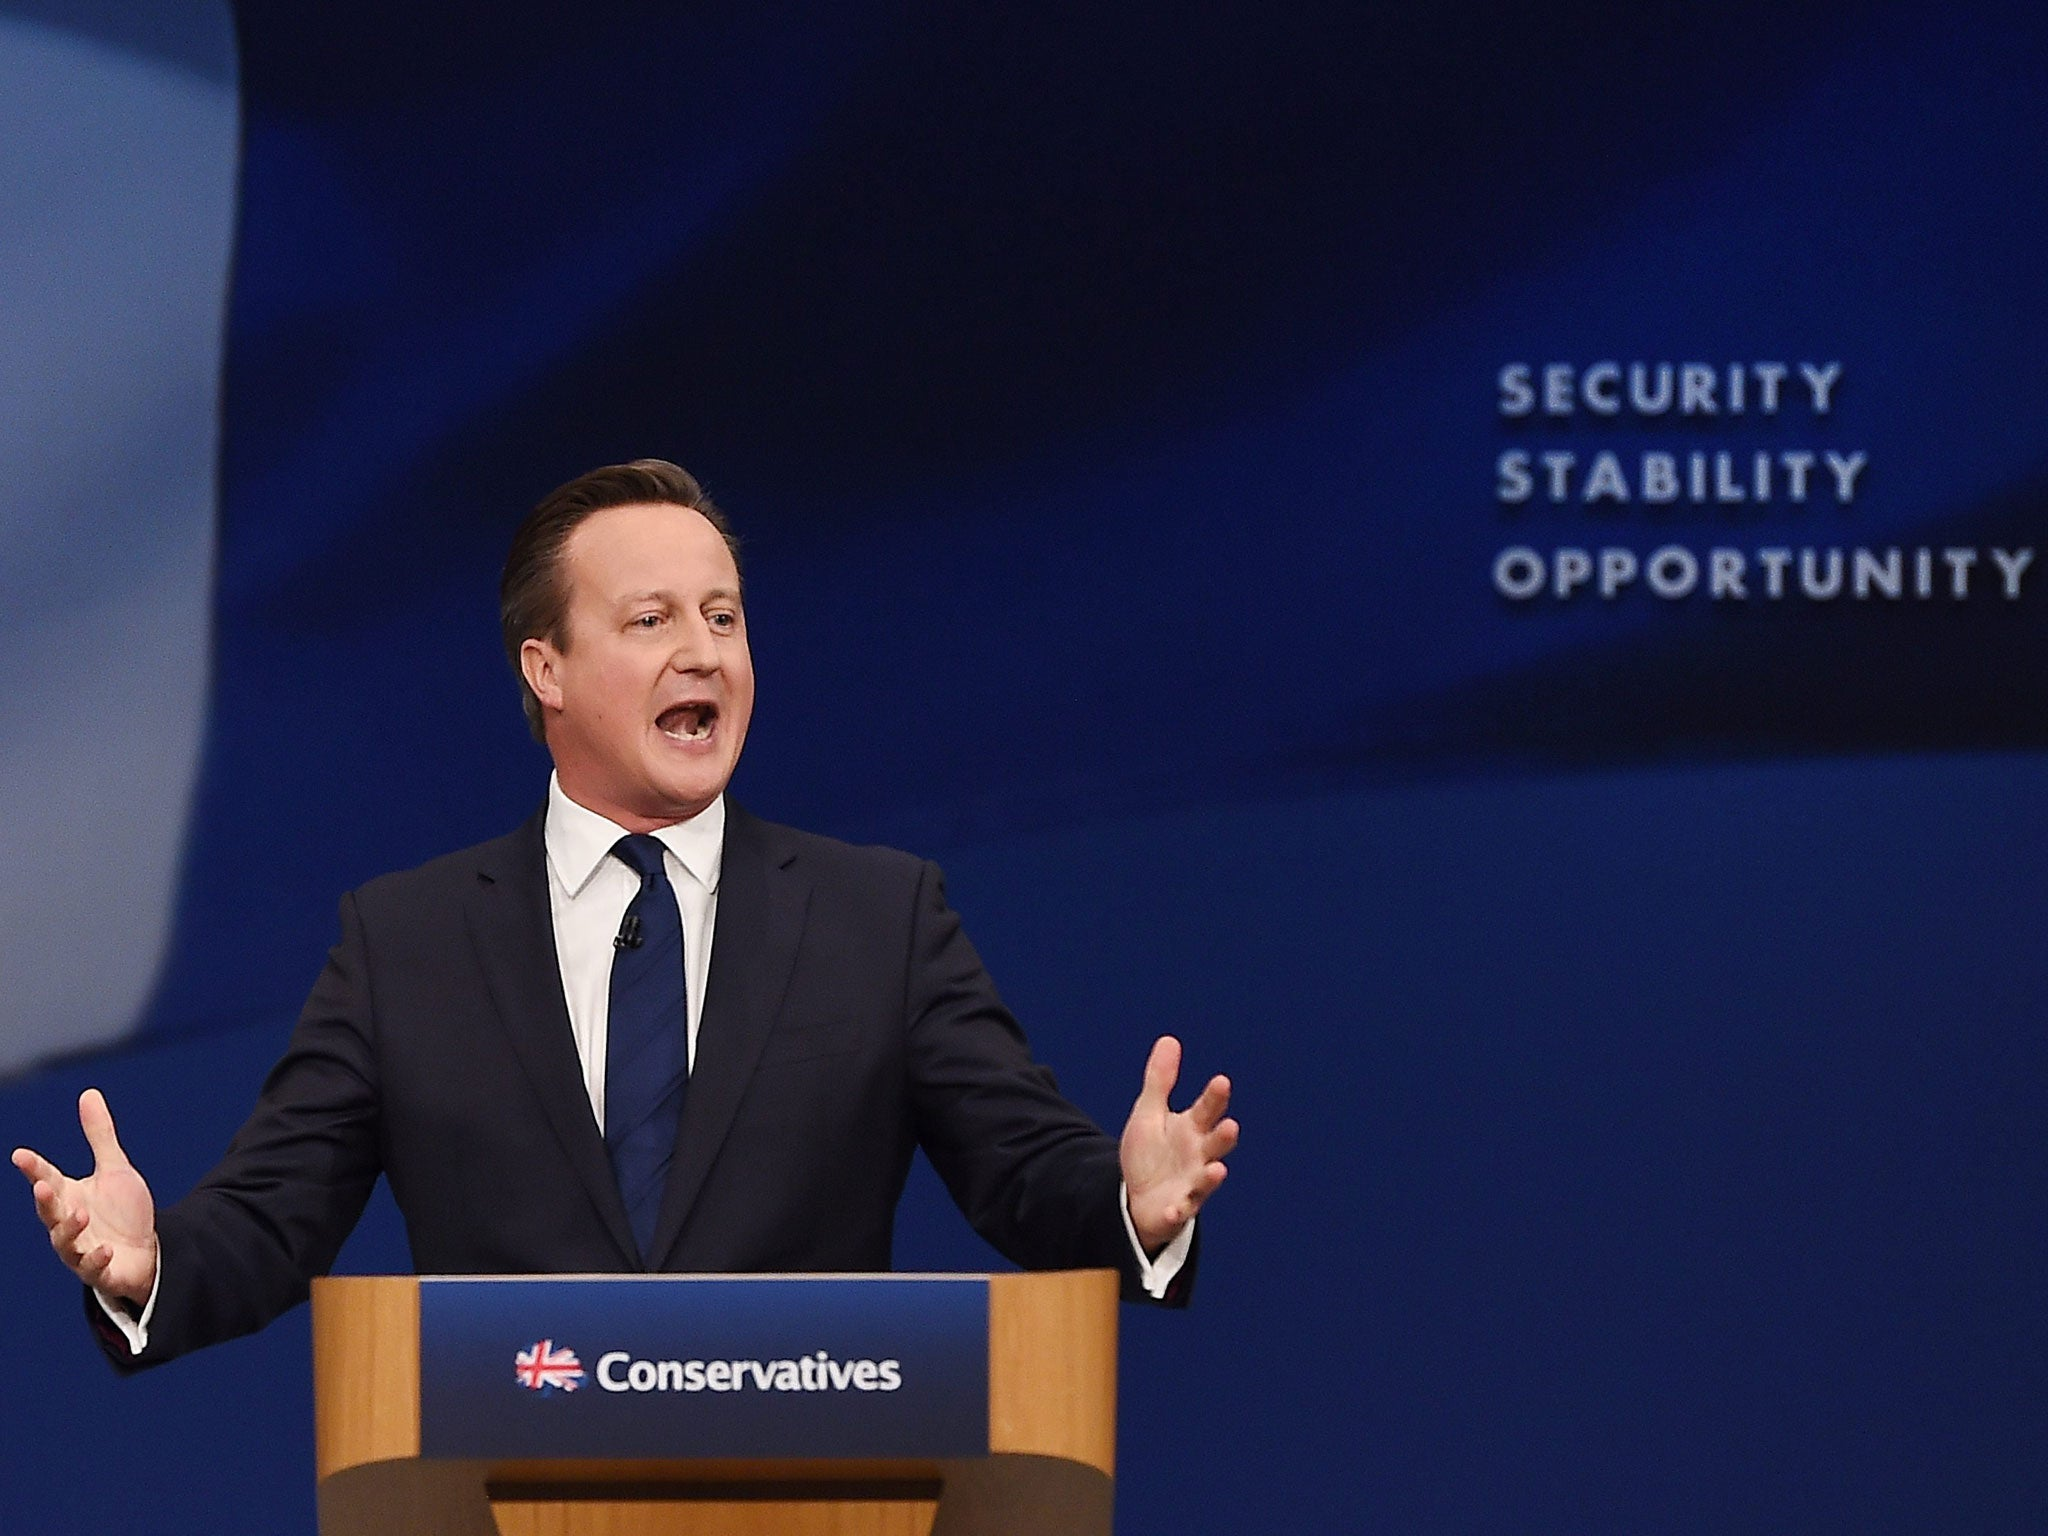 What David Cameron said about poverty in his Tory conference speech